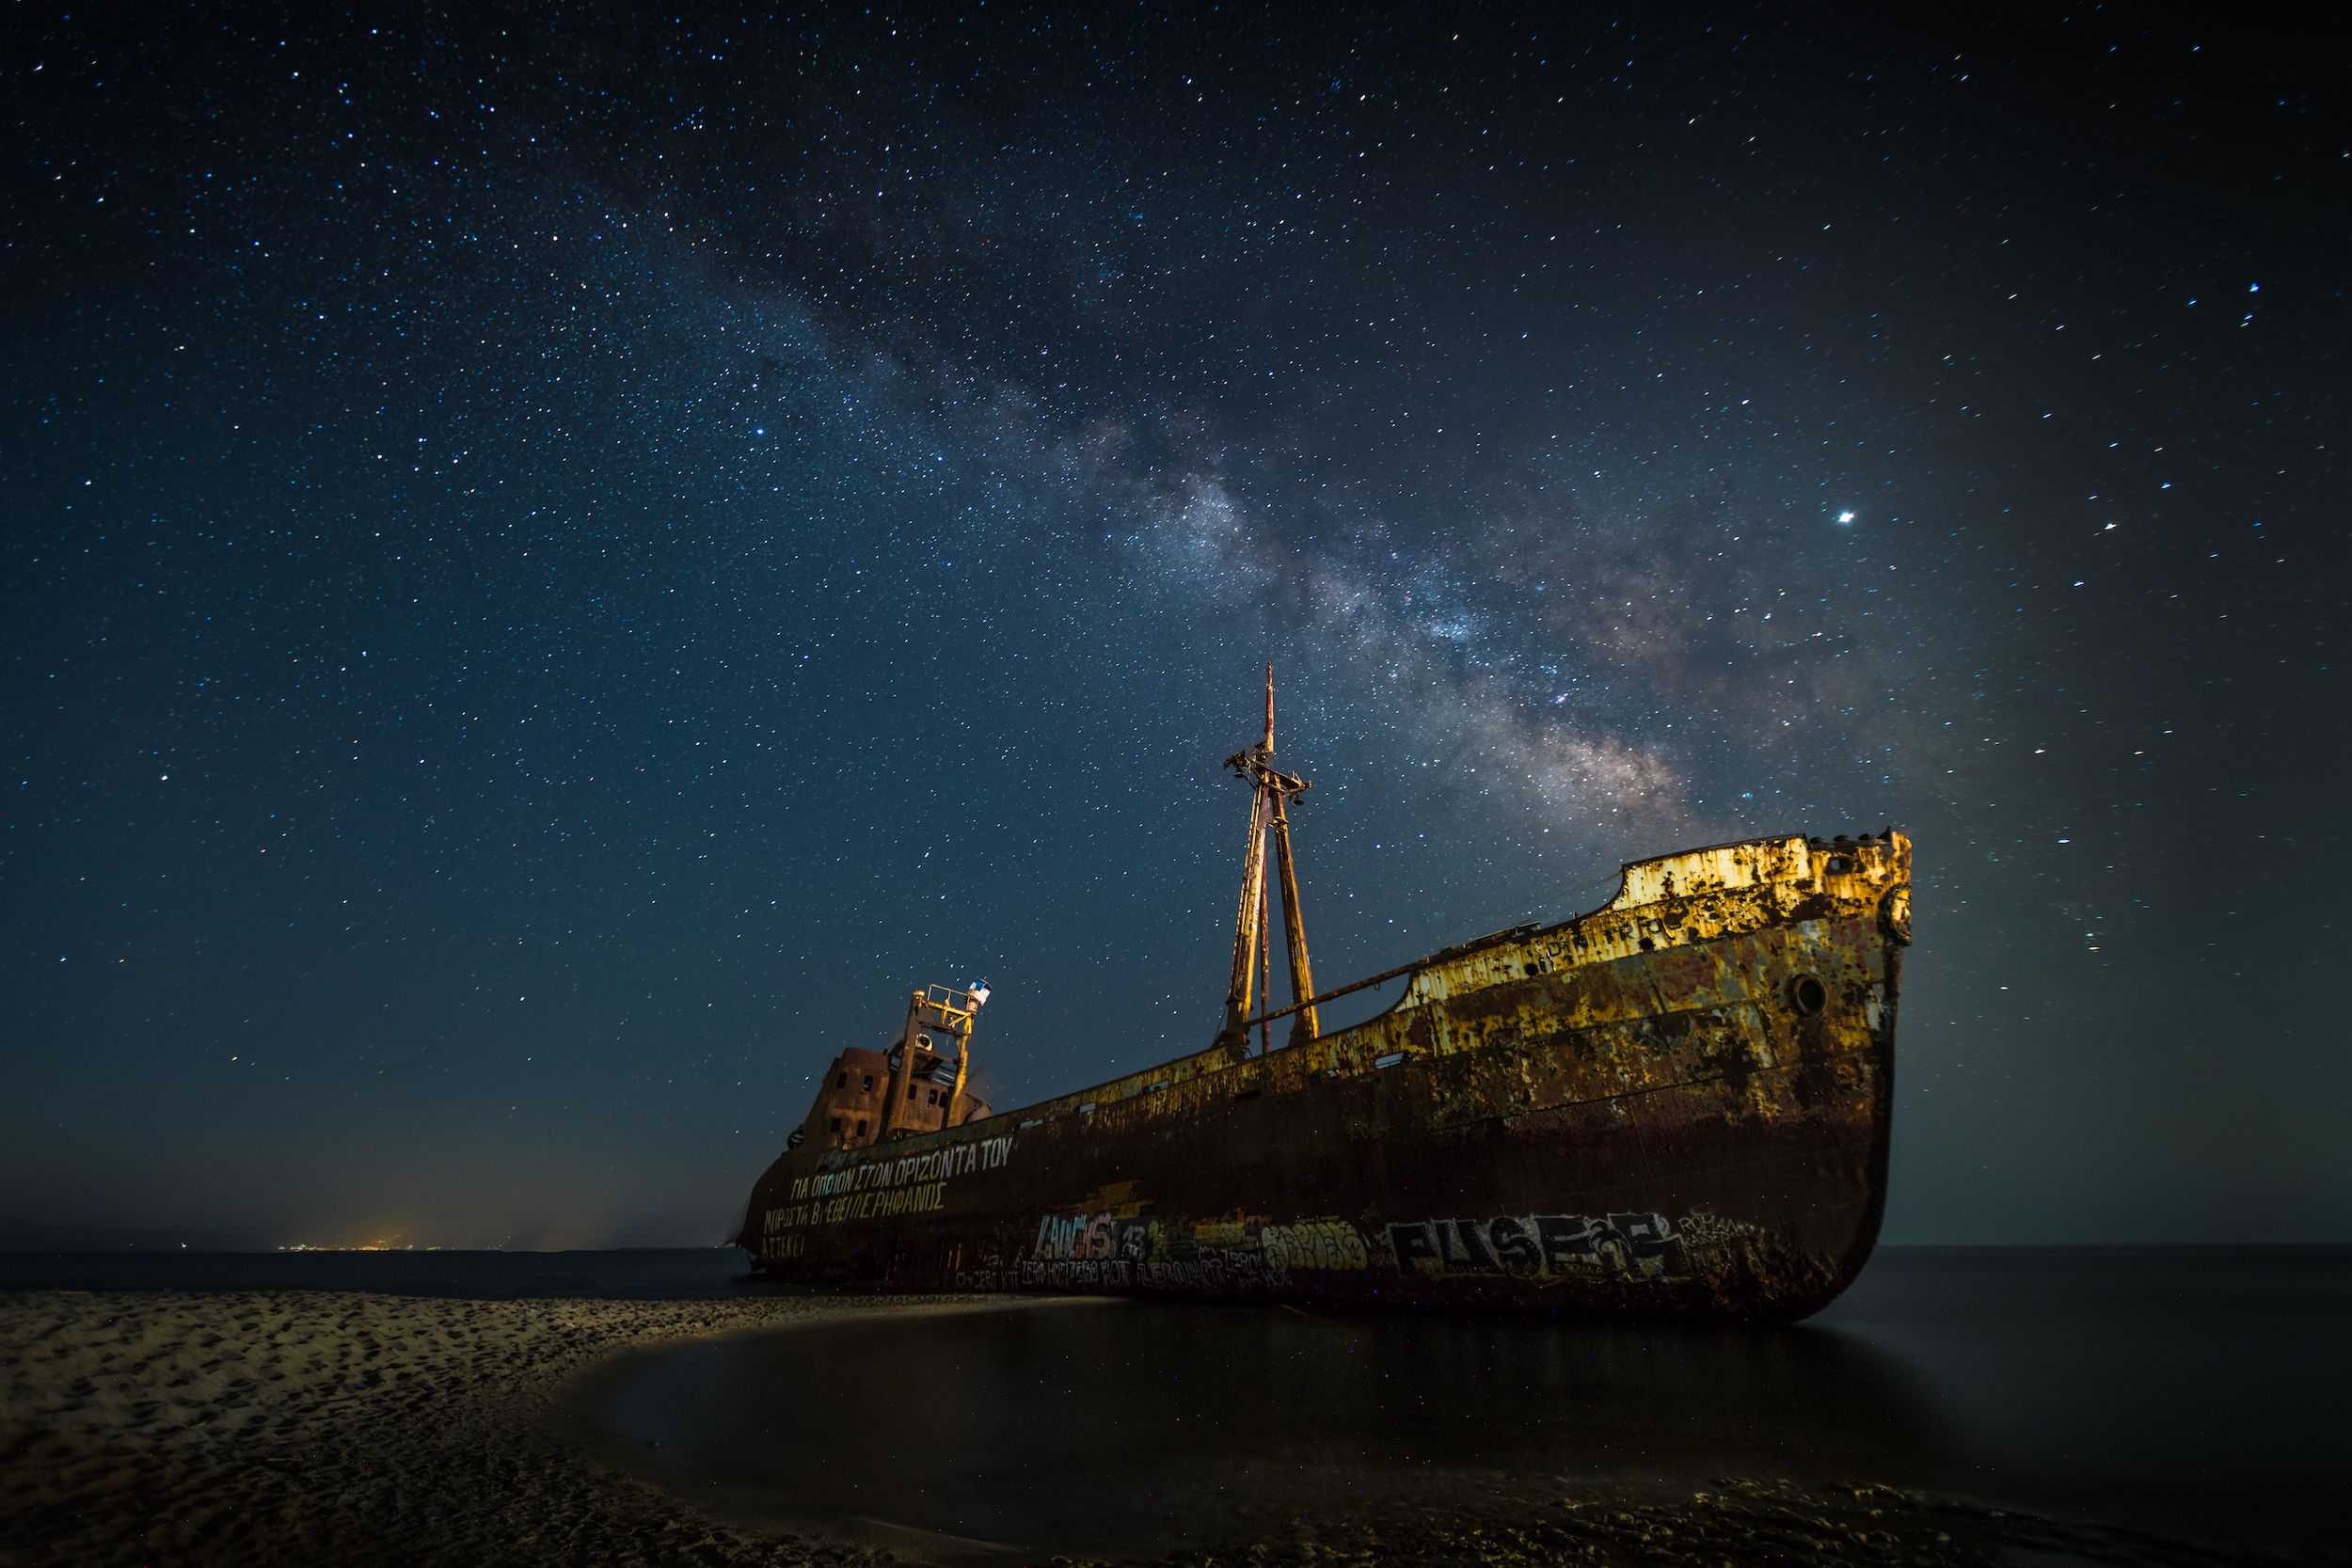 Milky Way over the shipwreck of the 'Dimitrios' in the Greek Peloponnese.